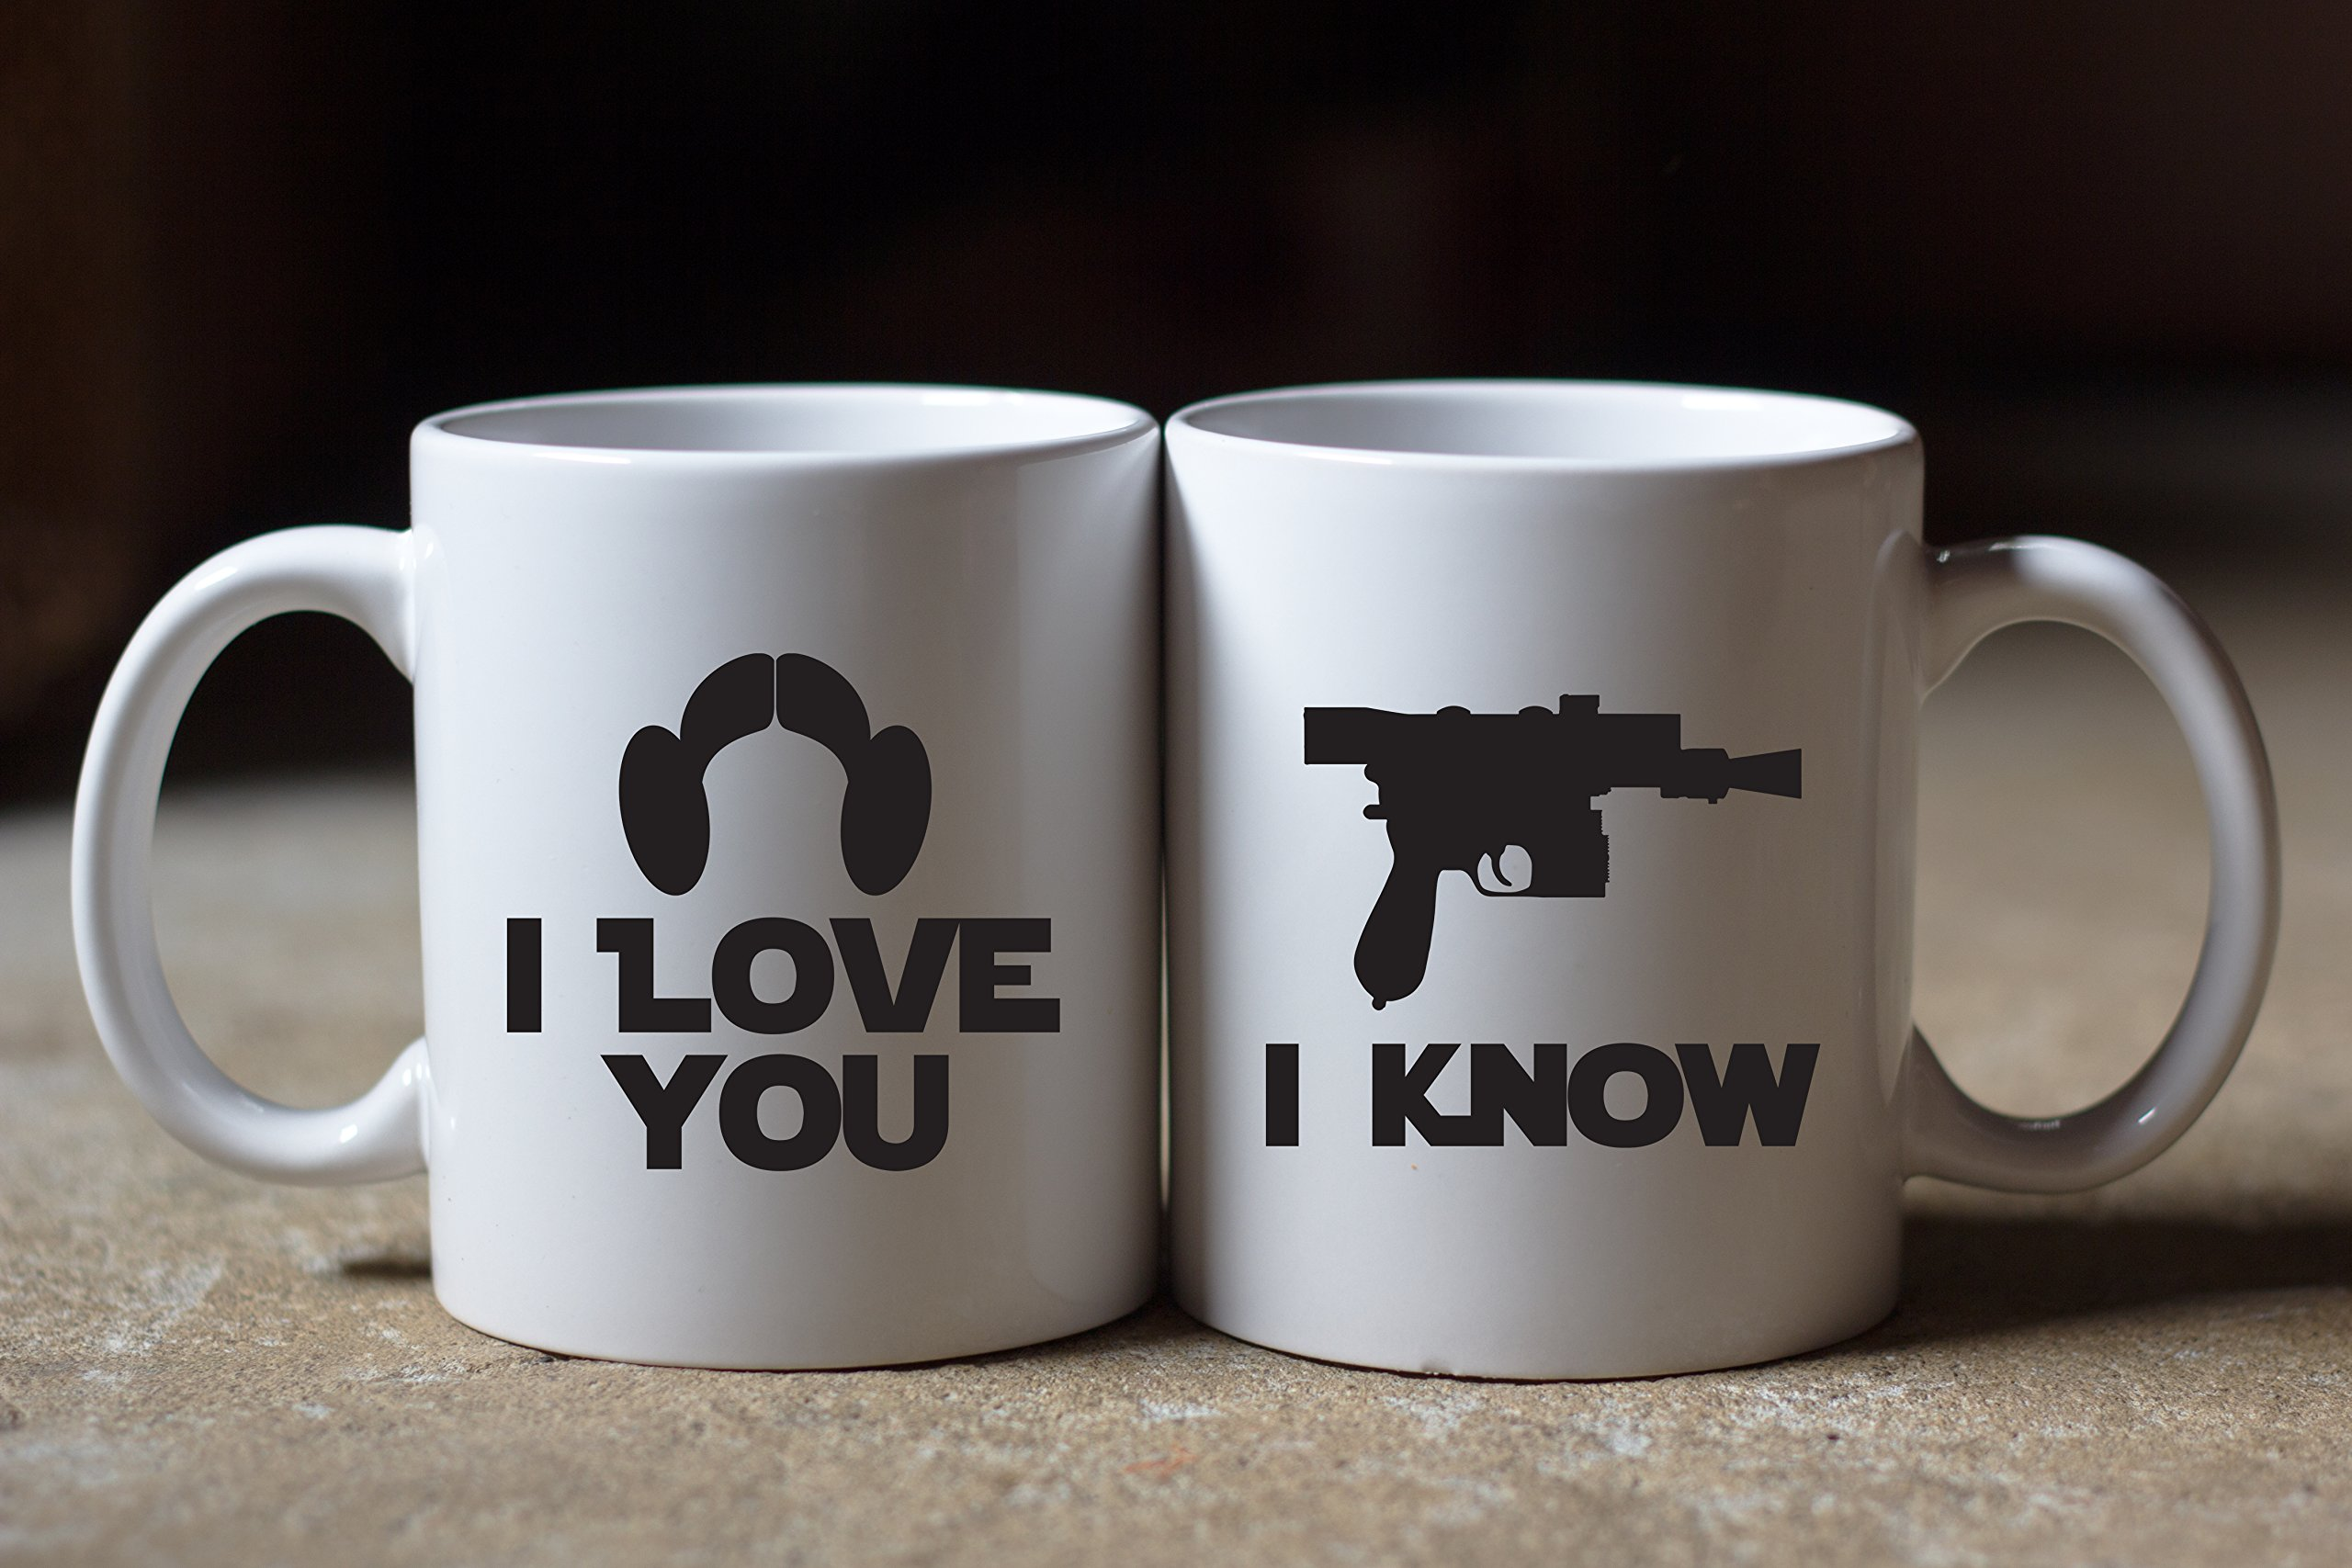 Star Wars Inspired I Love You, I Know Coffee Mug Set of 2 Great Gift for Fans Lovers by Bondi Boutique (Image #2)